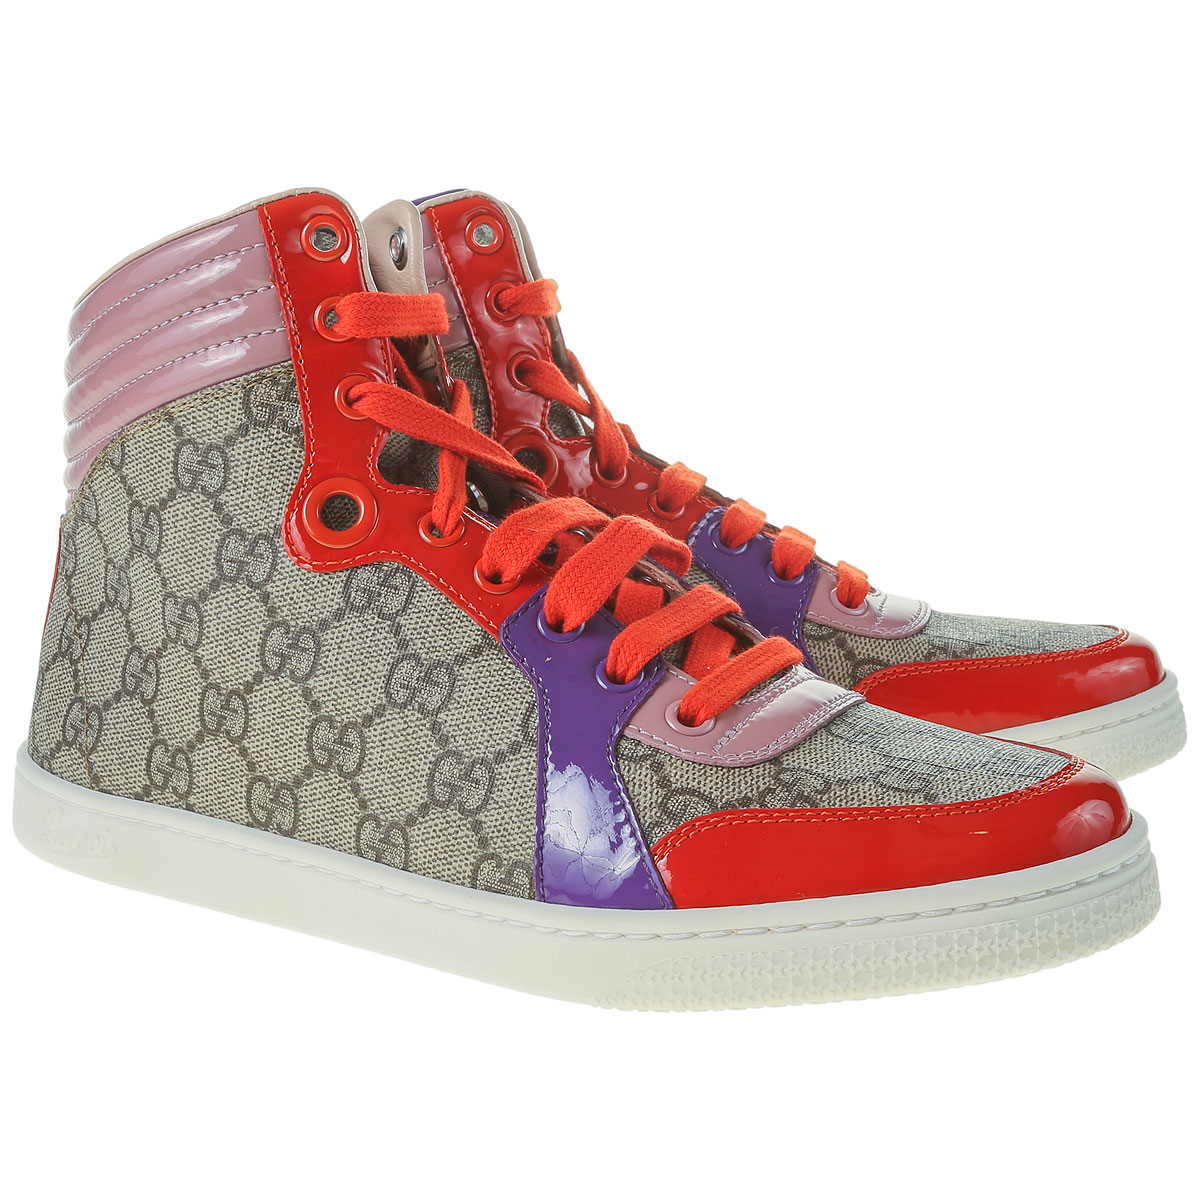 fab482baaf0 Gucci. Shoes for Women